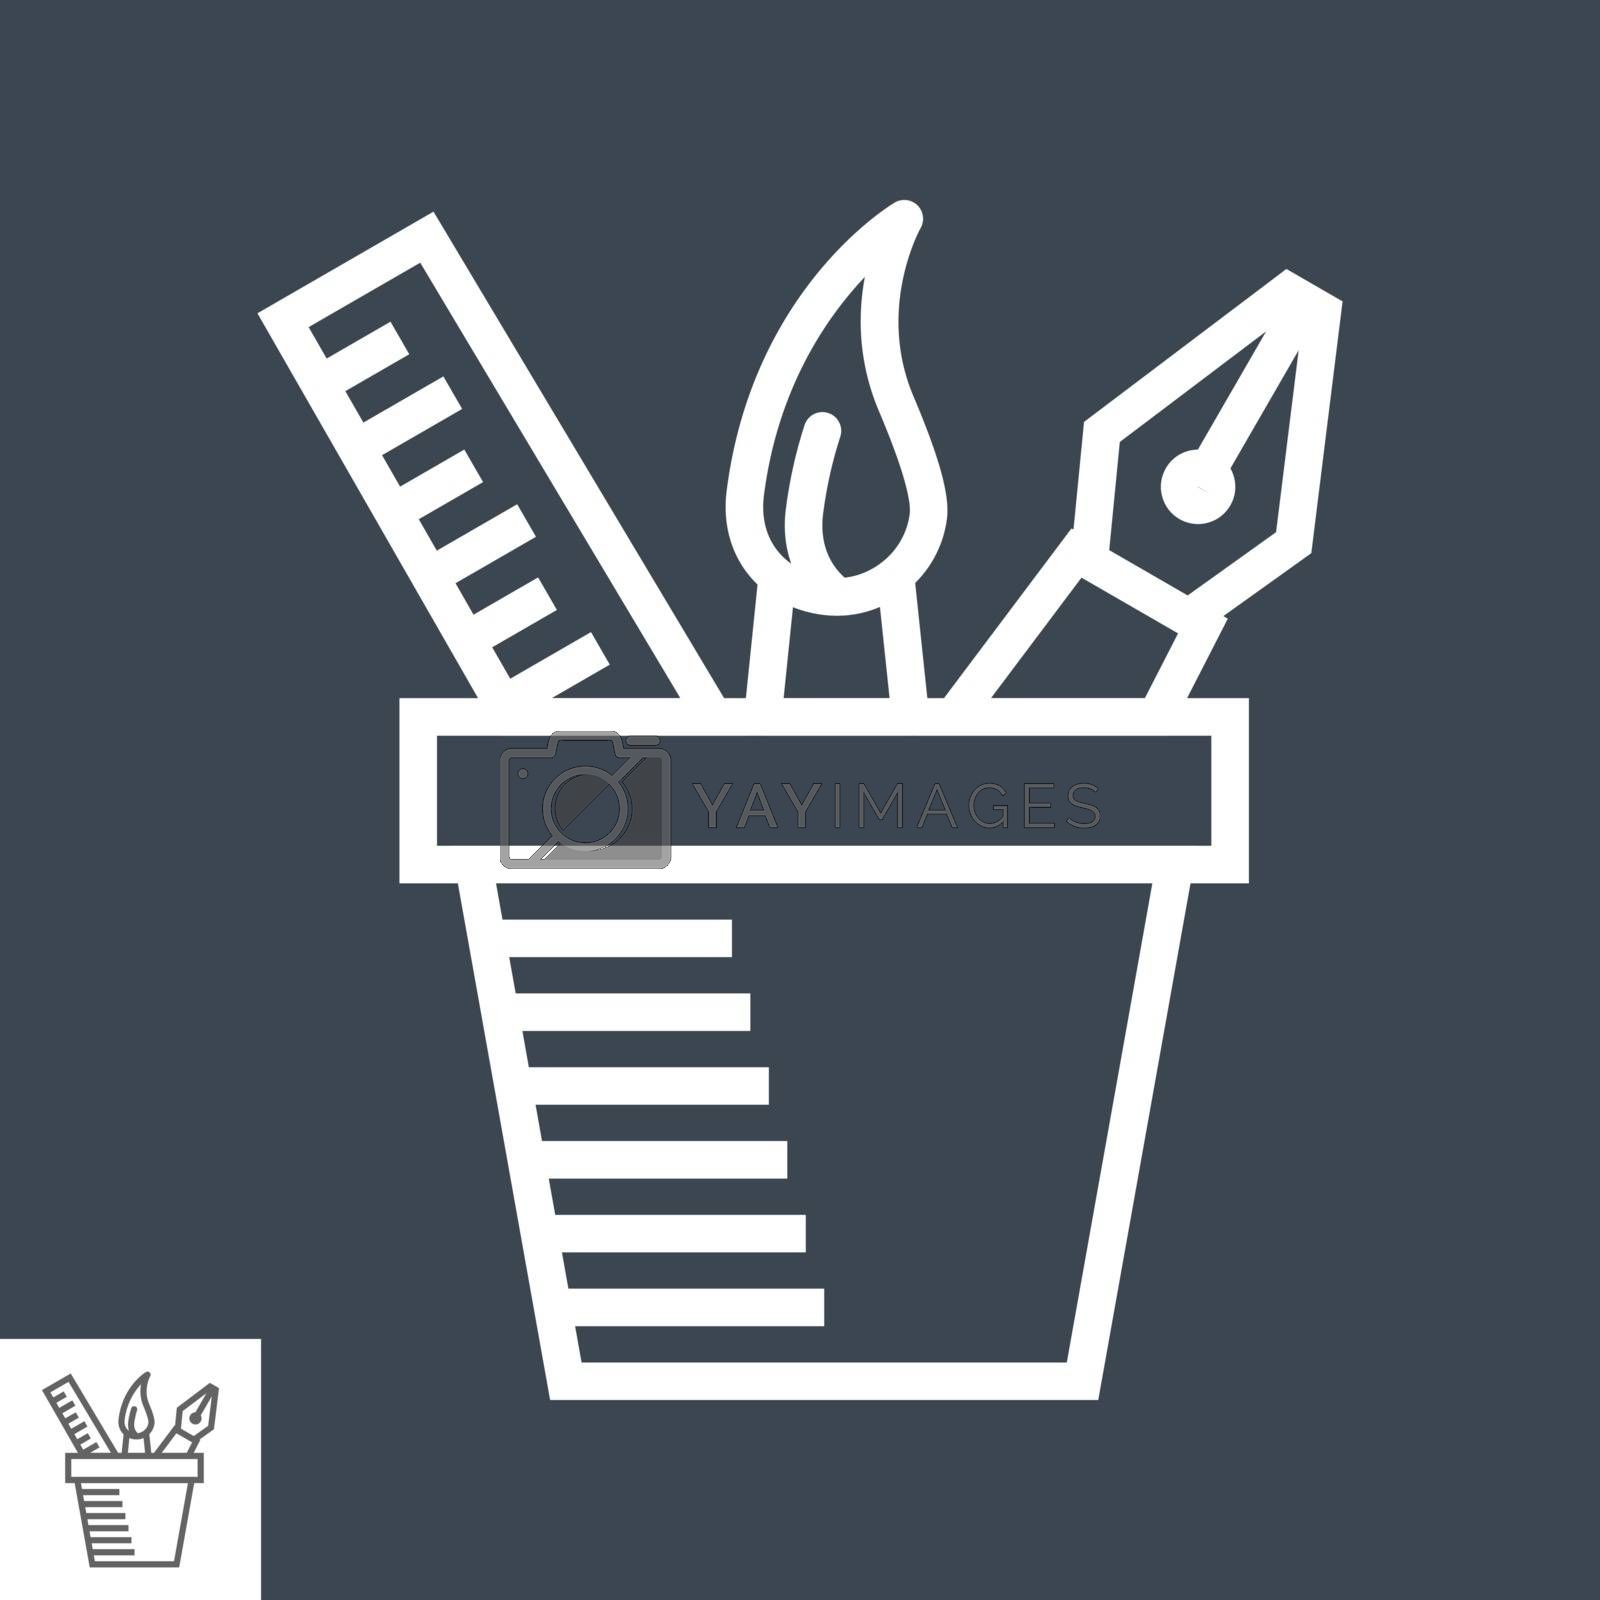 Design Tools Thin Line Vector Icon Isolated on the Black Background.